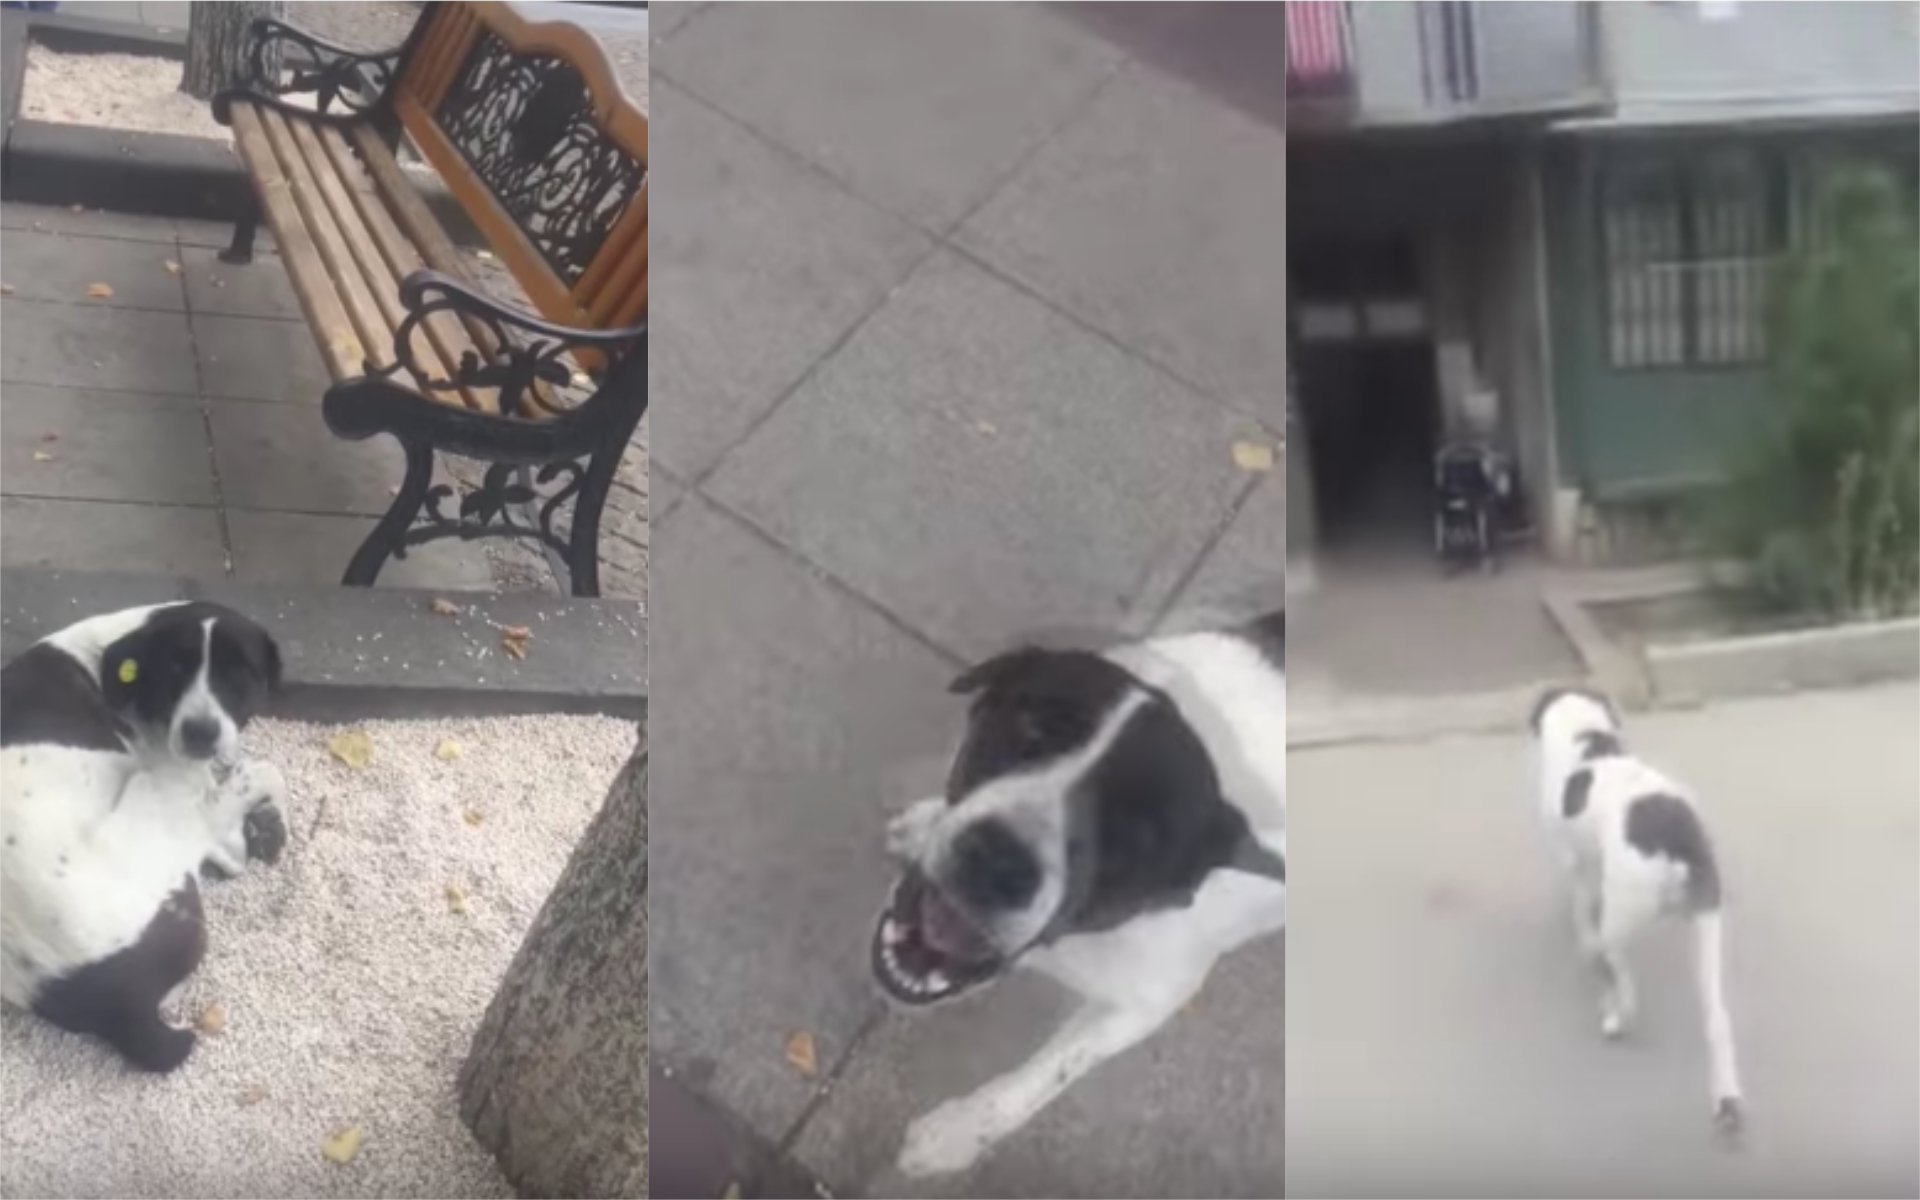 What happened next after this man found his lost dog on the street will make you cry!